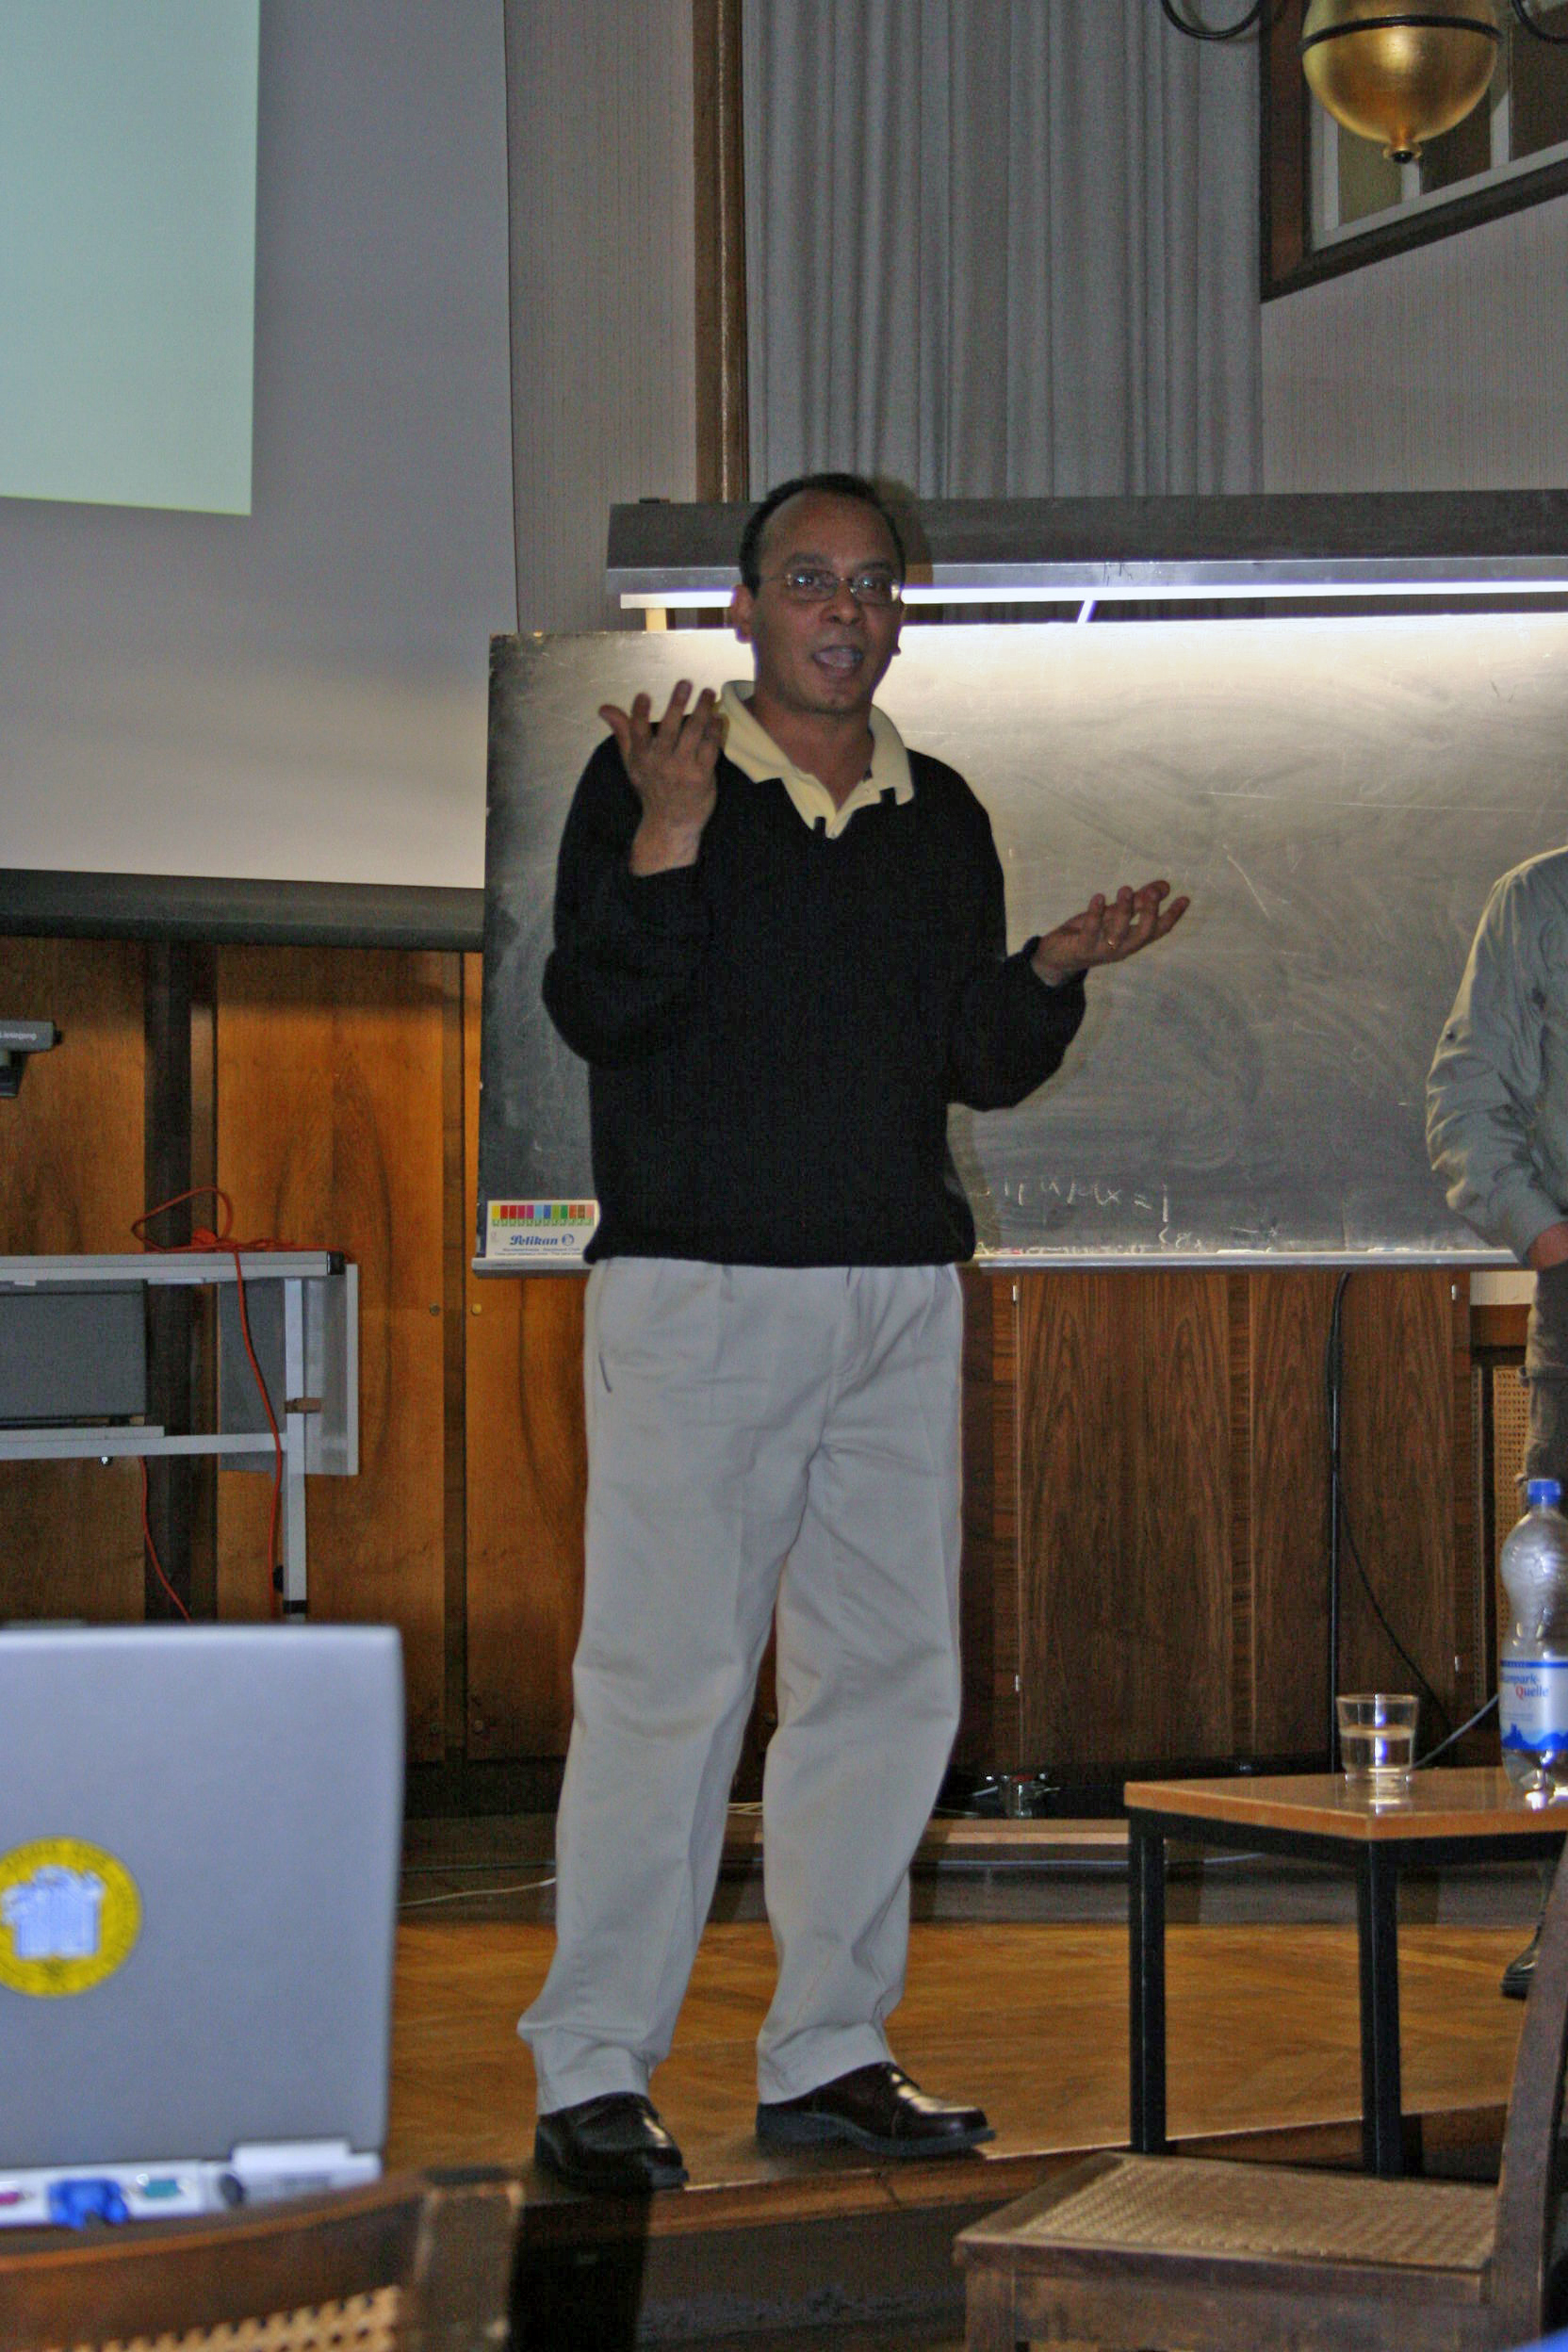 Vivek Lecturing